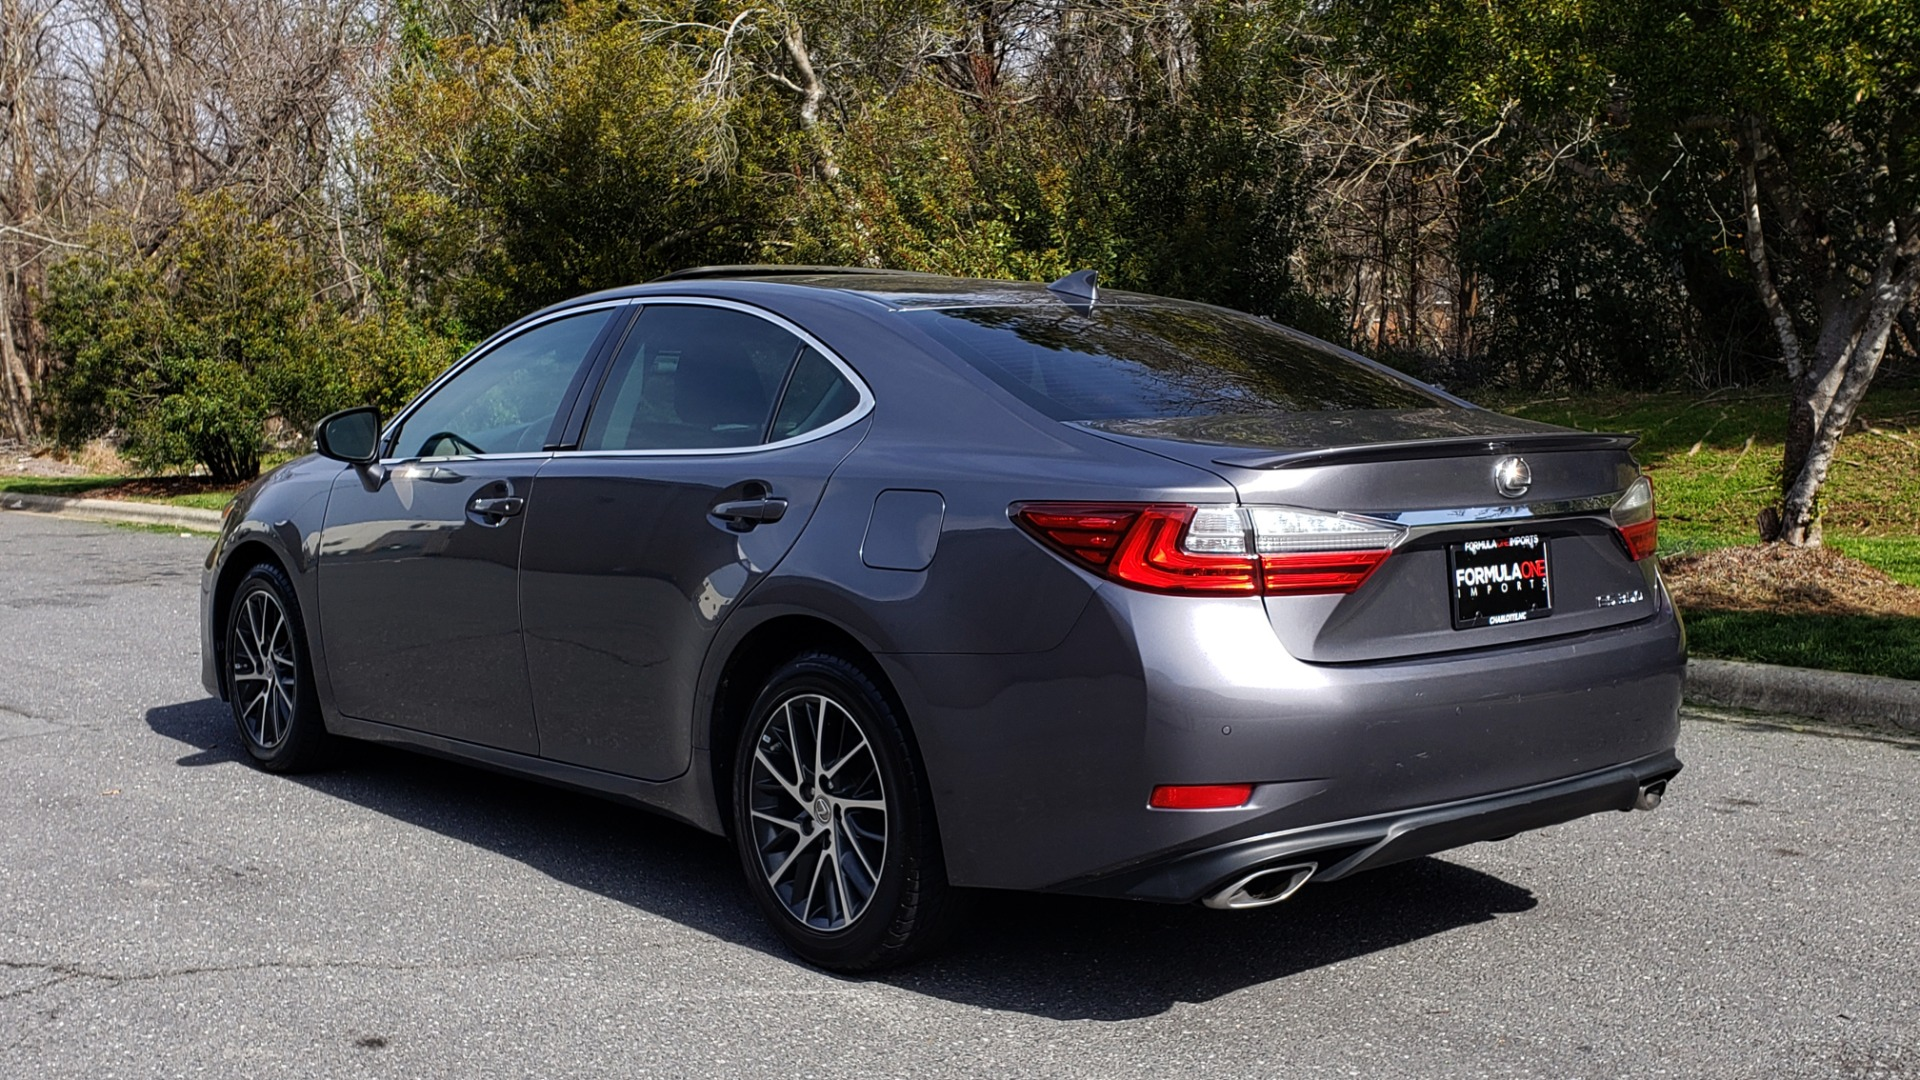 Used 2016 Lexus ES 350 4-DR PREMIUM / SUNROOF / BSM / REARVIEW / VENT STS for sale Sold at Formula Imports in Charlotte NC 28227 3